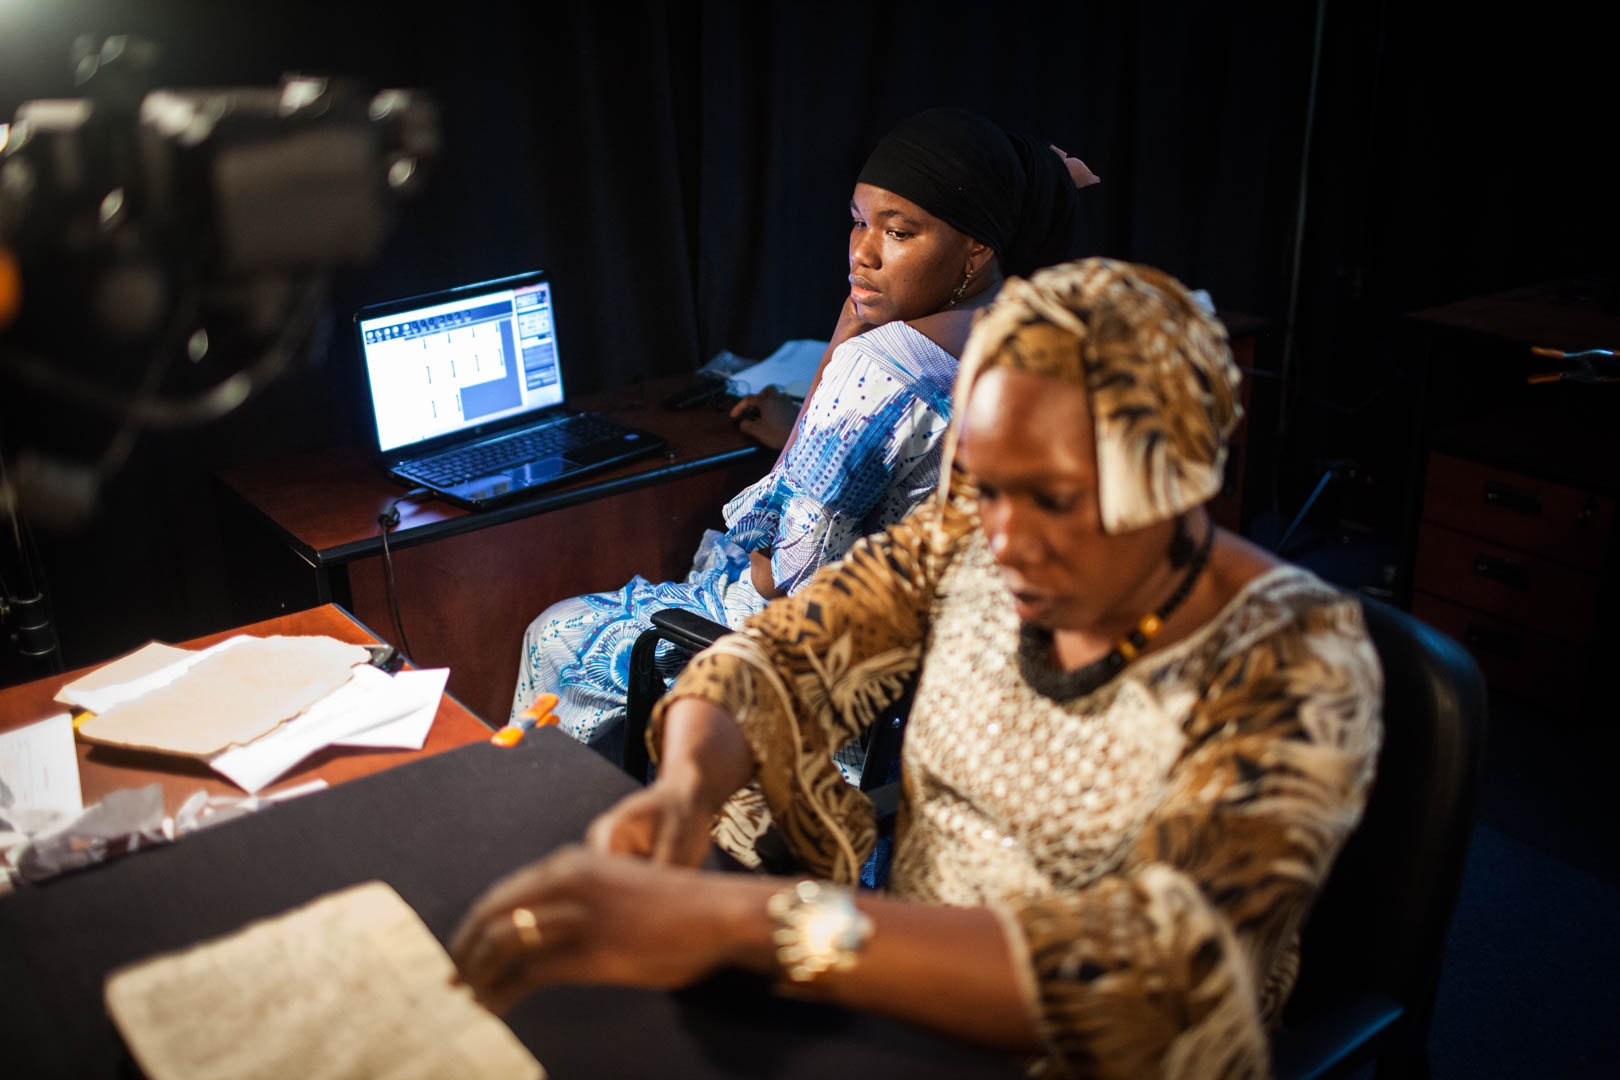 Two female restorers prepare a manuscript for archiving in a facility in Bamako.